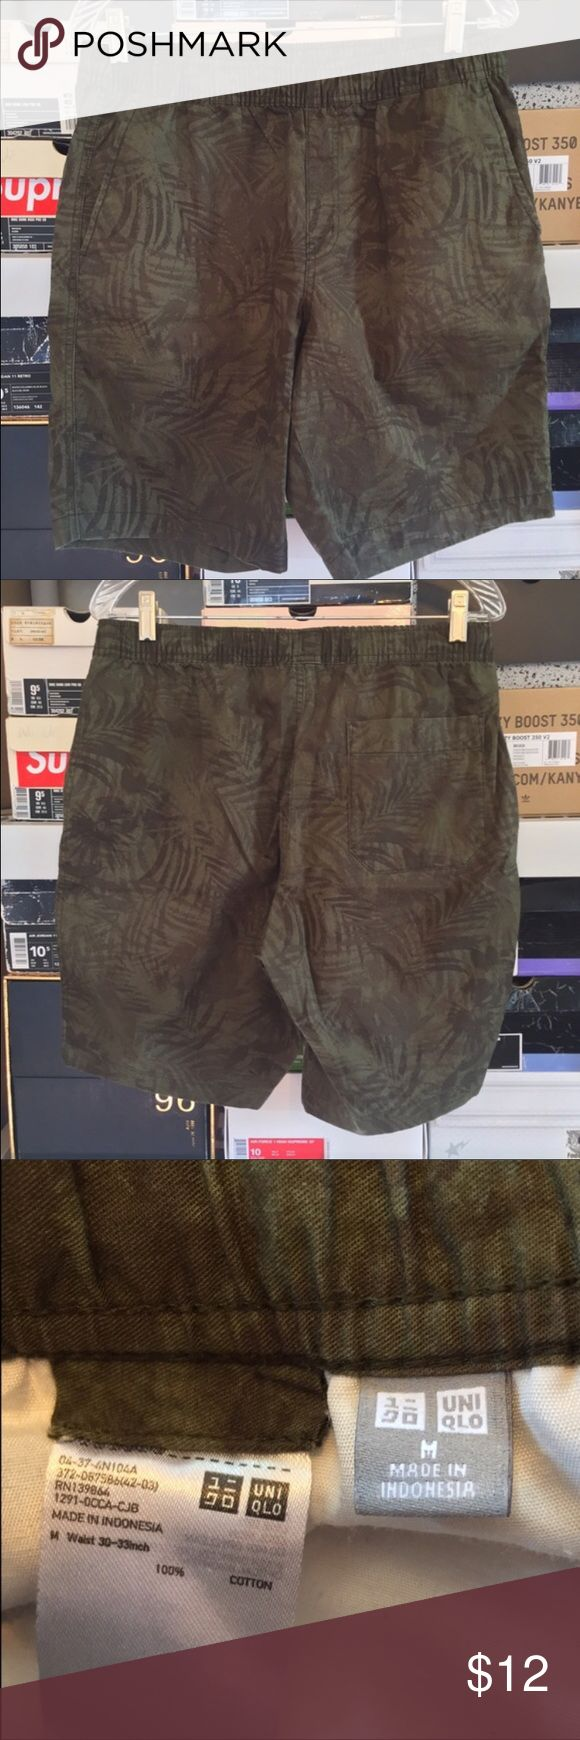 Mens Uniqlo Green Forest Print Shorts Size Medium Mens Uniqlo Forest Green Palm Tree Shorts   These shorts are preowned but in great condition. Shorts also have adjustable waistband.  Size Medium (30-33) Uniqlo Shorts